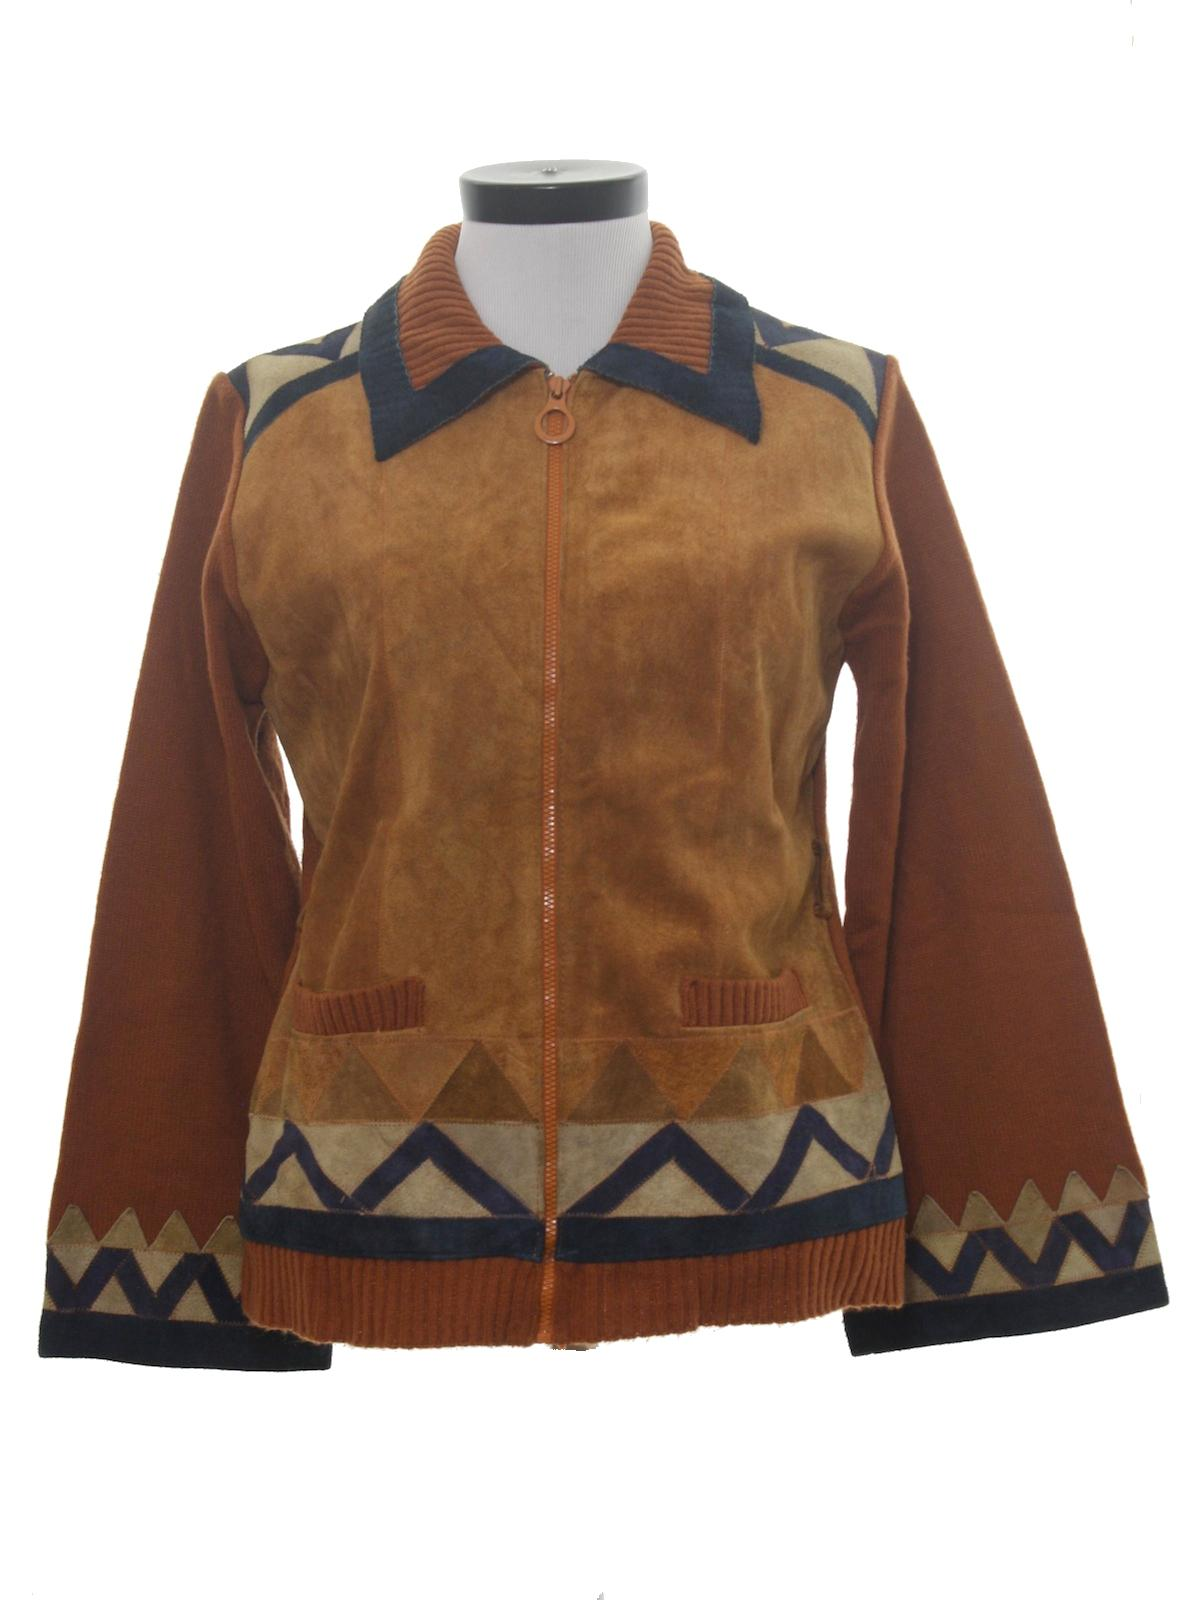 Leather jacket kmart - Kmart 1970s Vintage Leather Jacket 70s Kmart Womens Burnt Orange Acrylic Background With Soft Brown Tan And Navy Blue Suede Panels Along The Front Chest